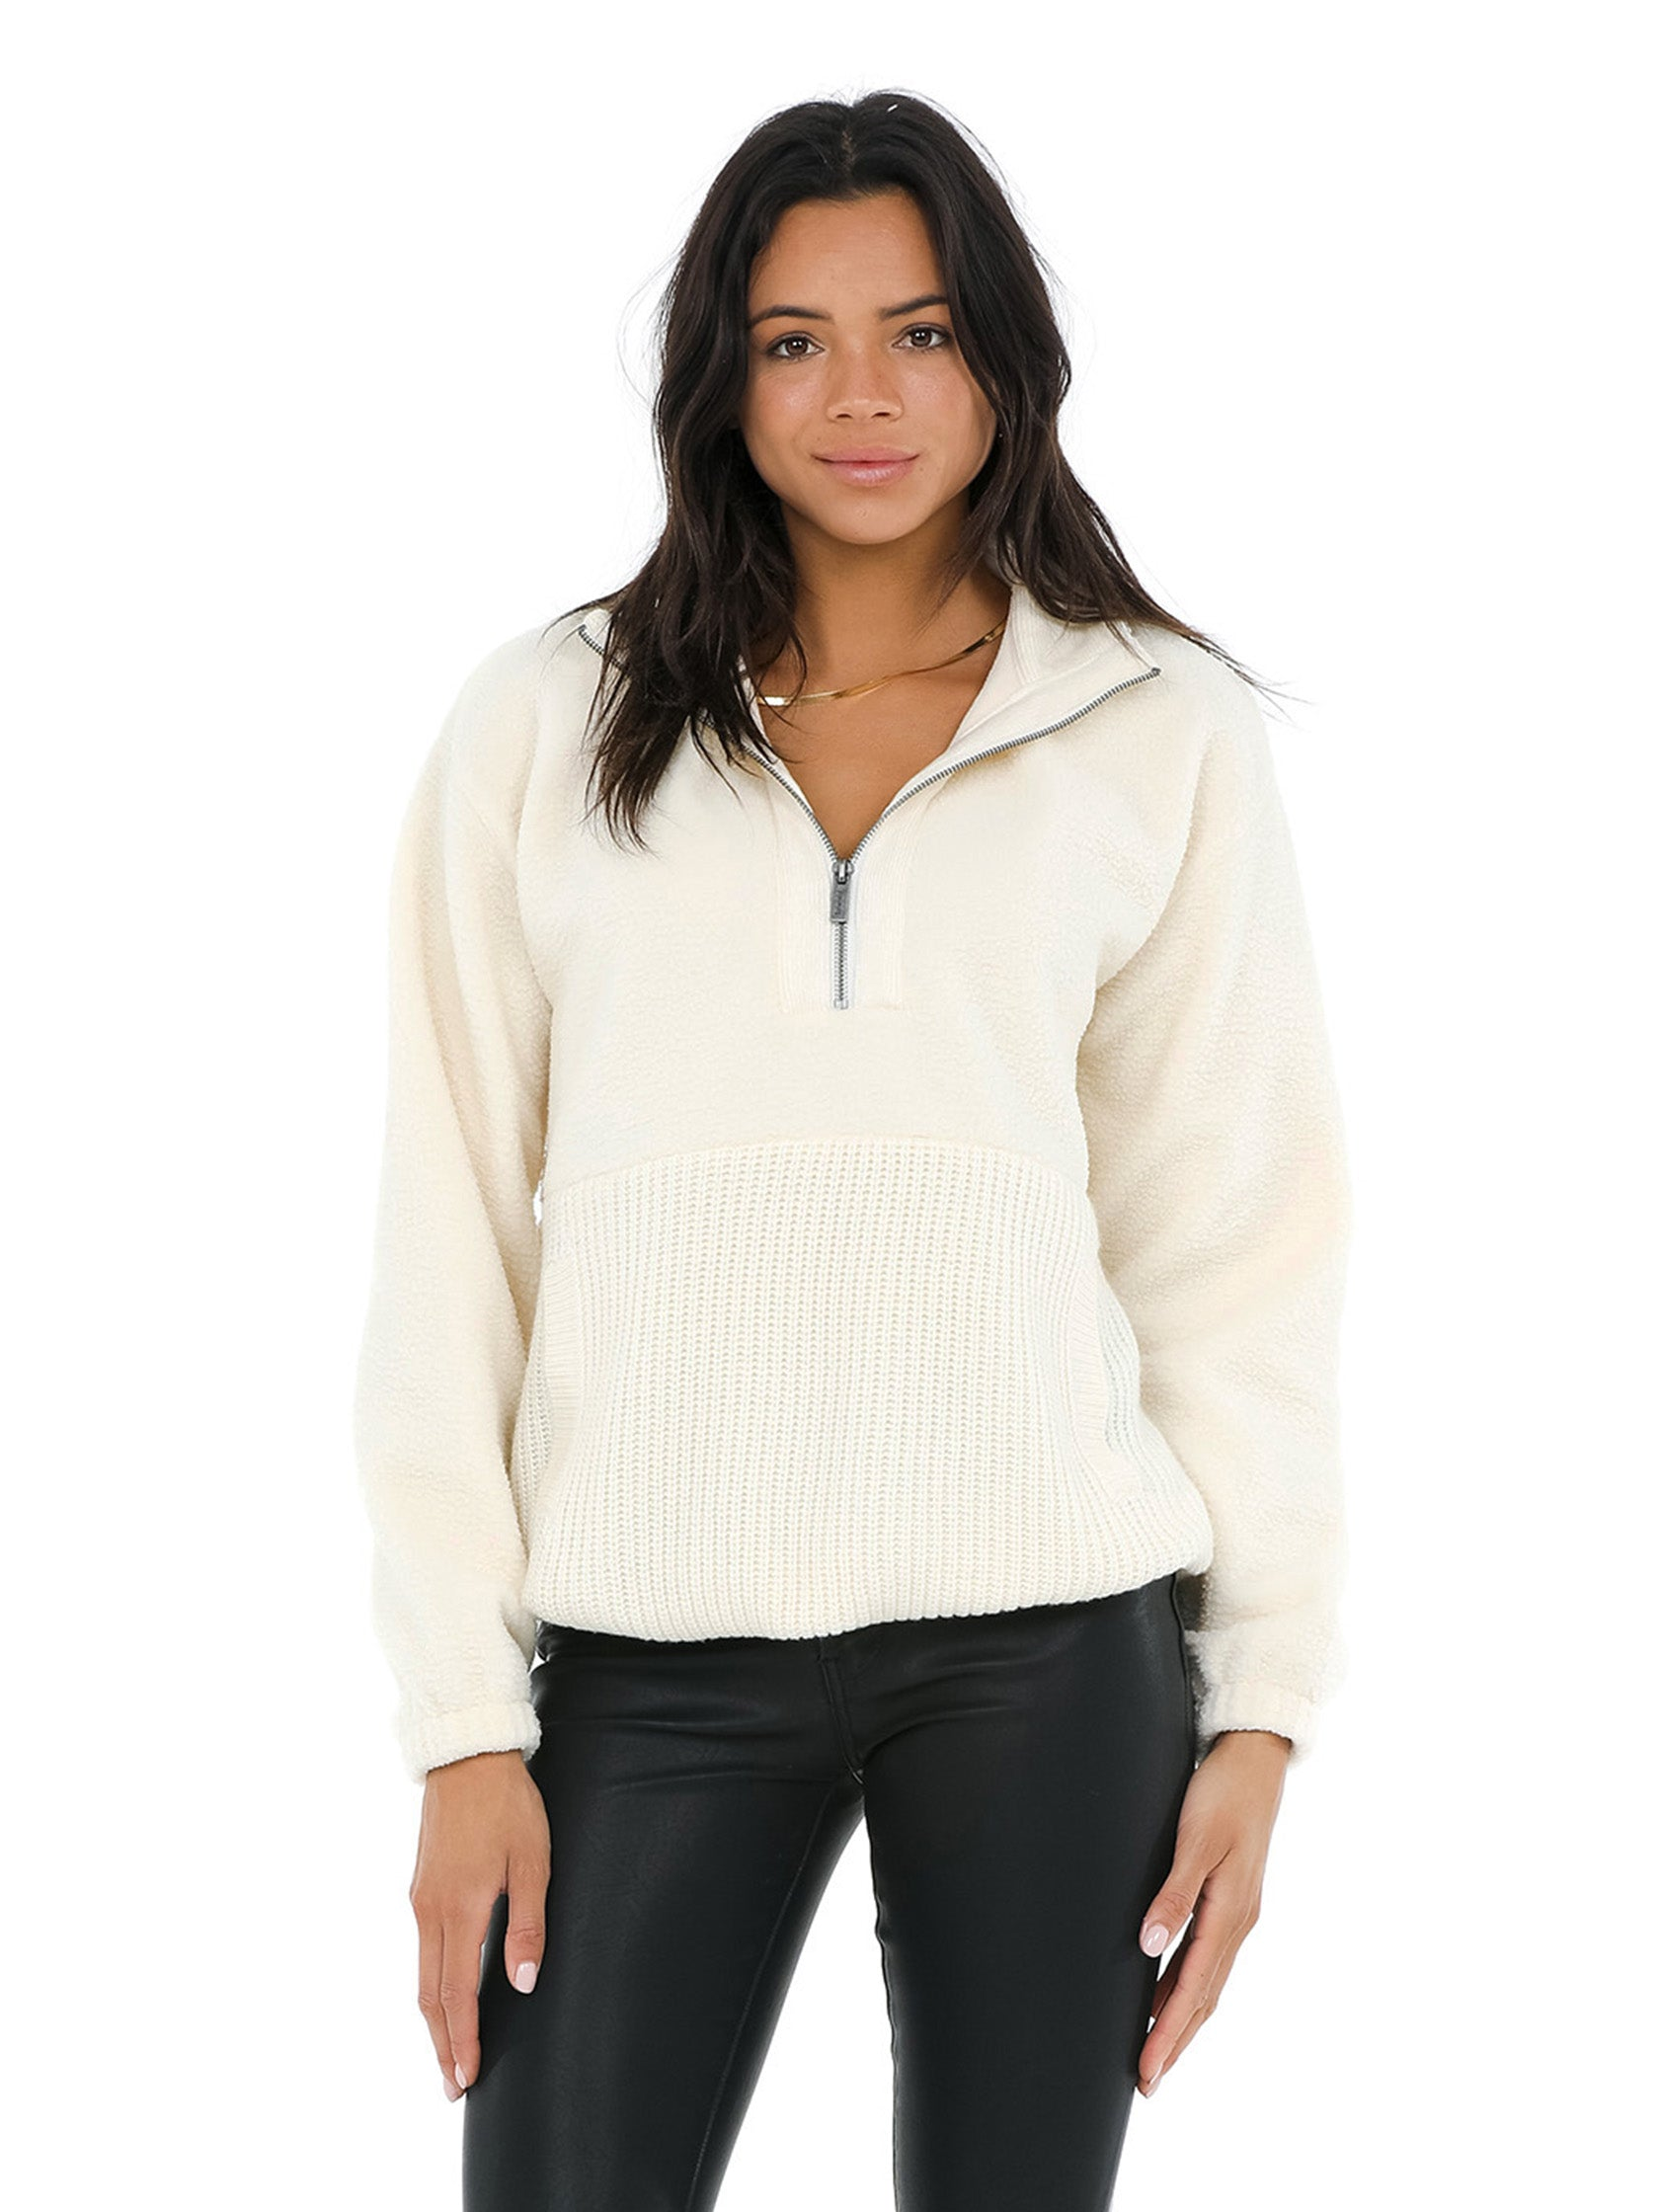 Woman wearing a sweater rental from Splendid called Boulder Half-zip Pullover